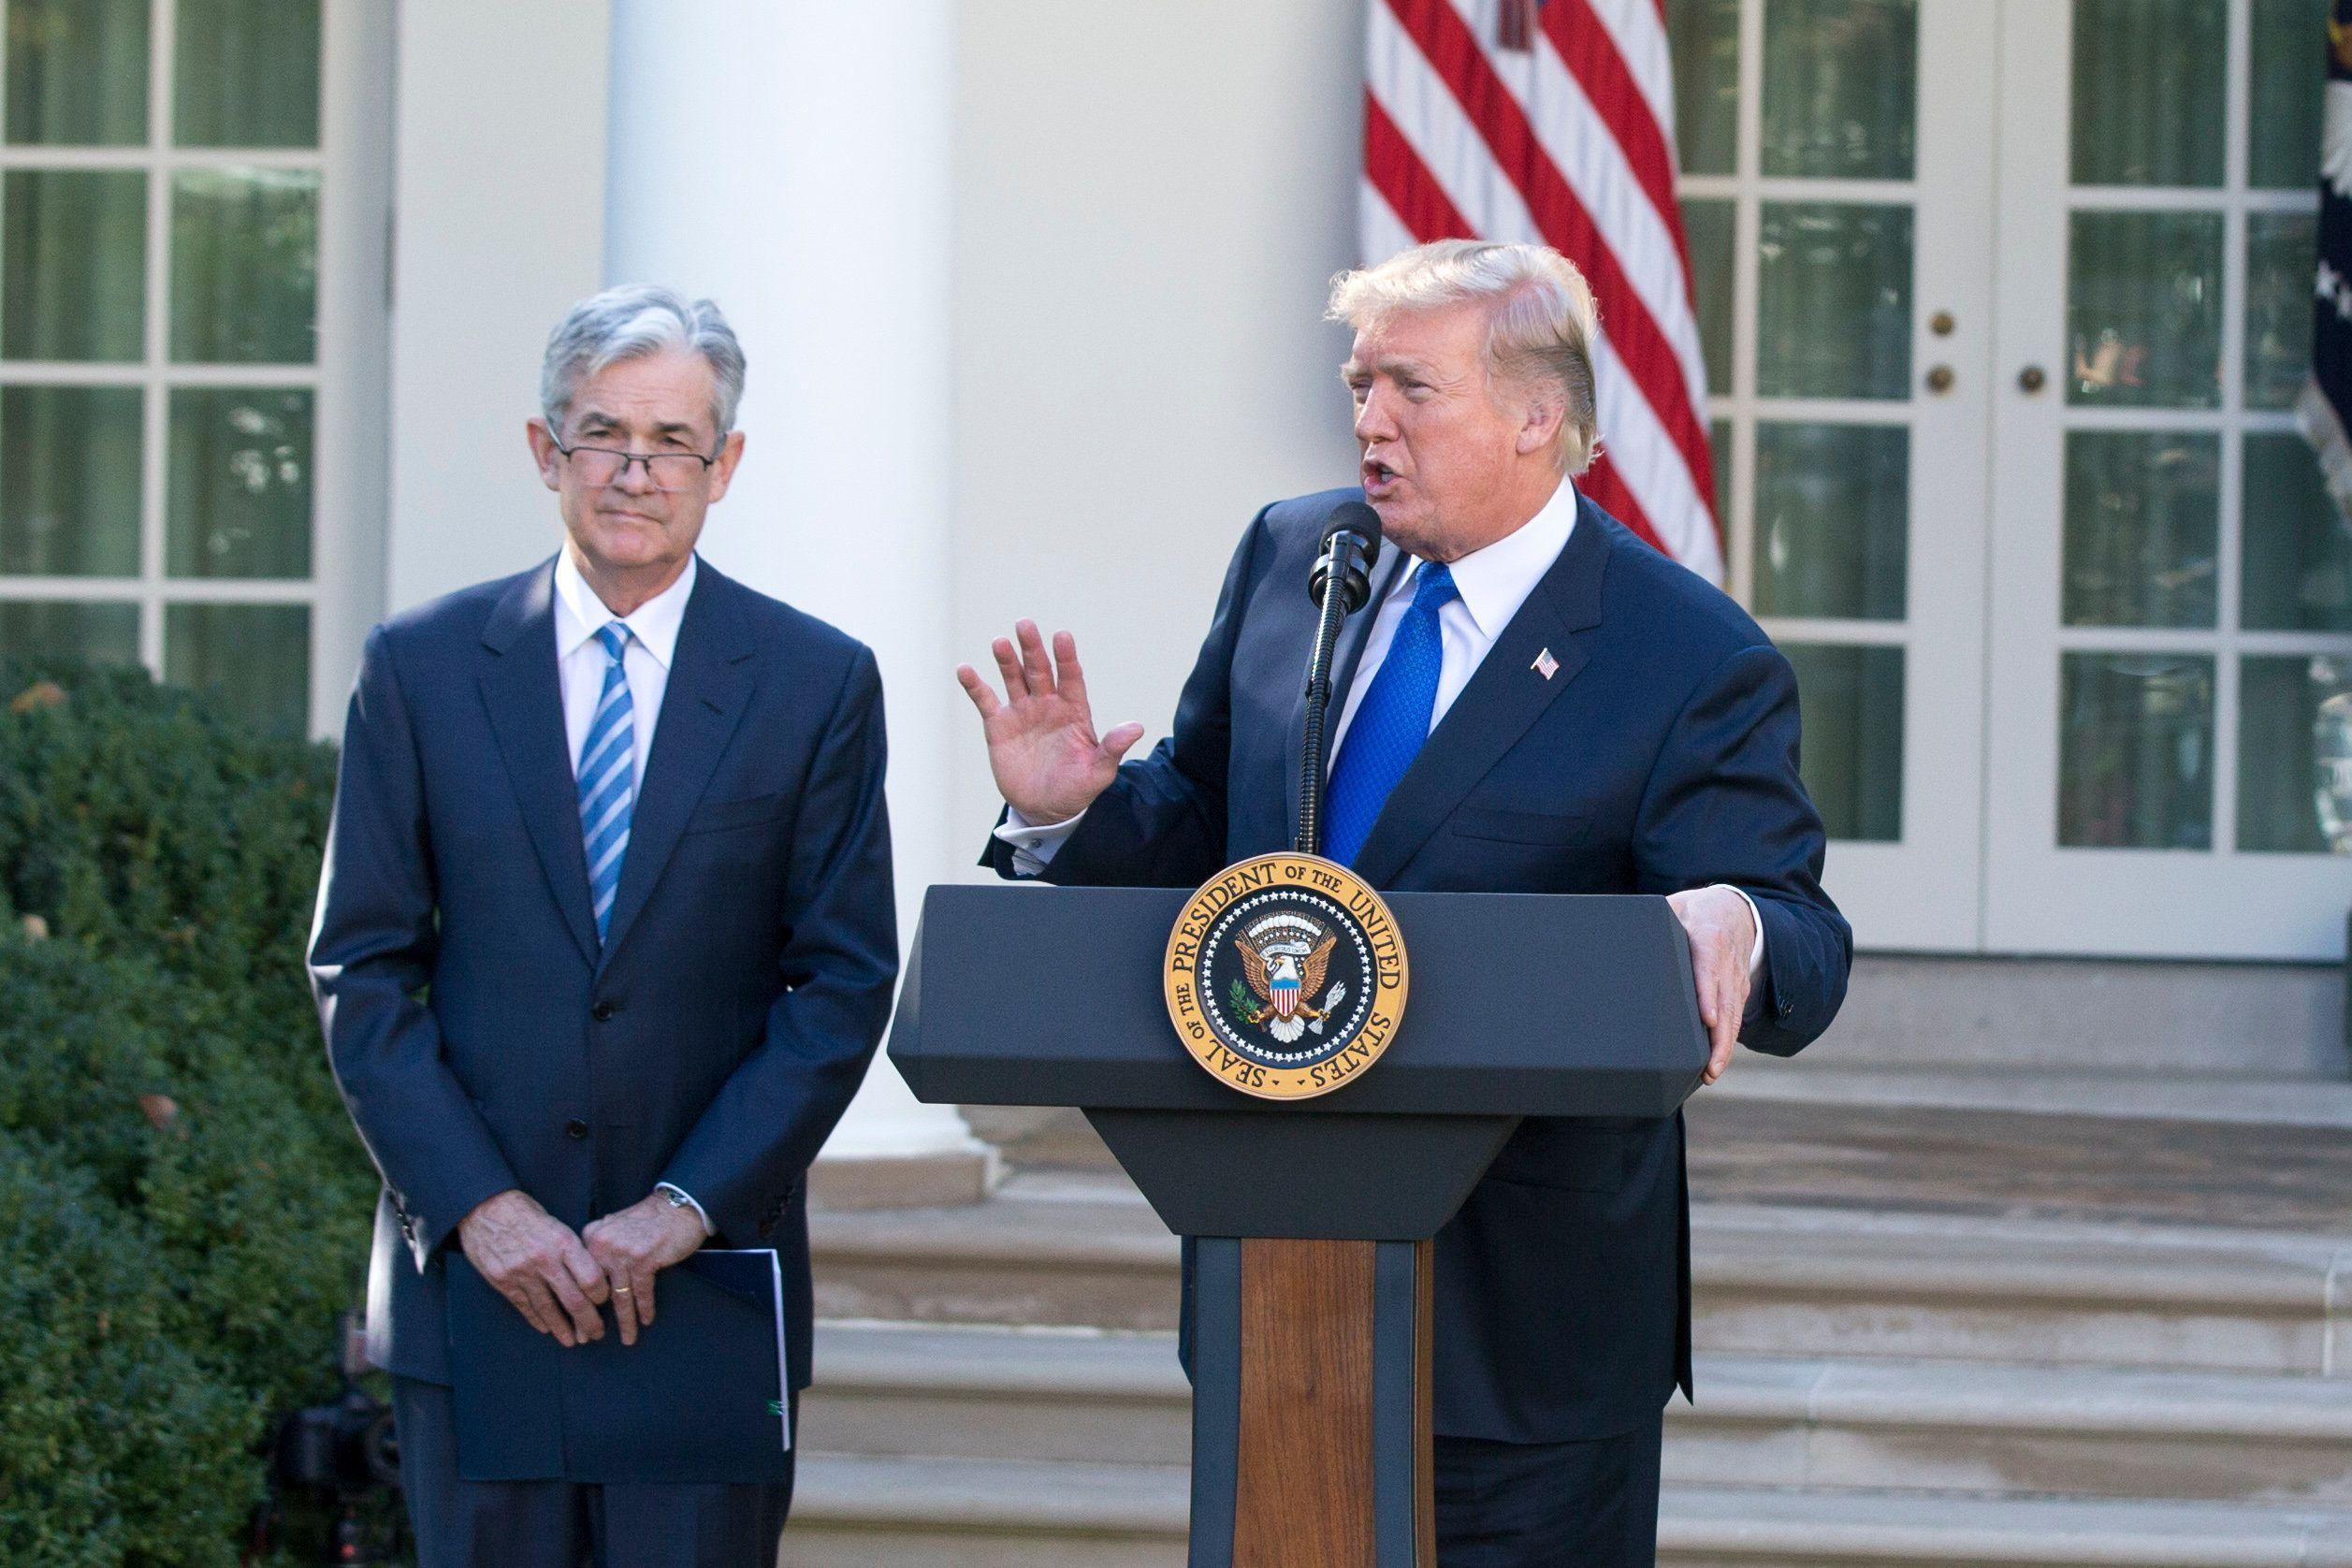 Trump: The economy would've grown over 4% if the Fed hadn't raised rates